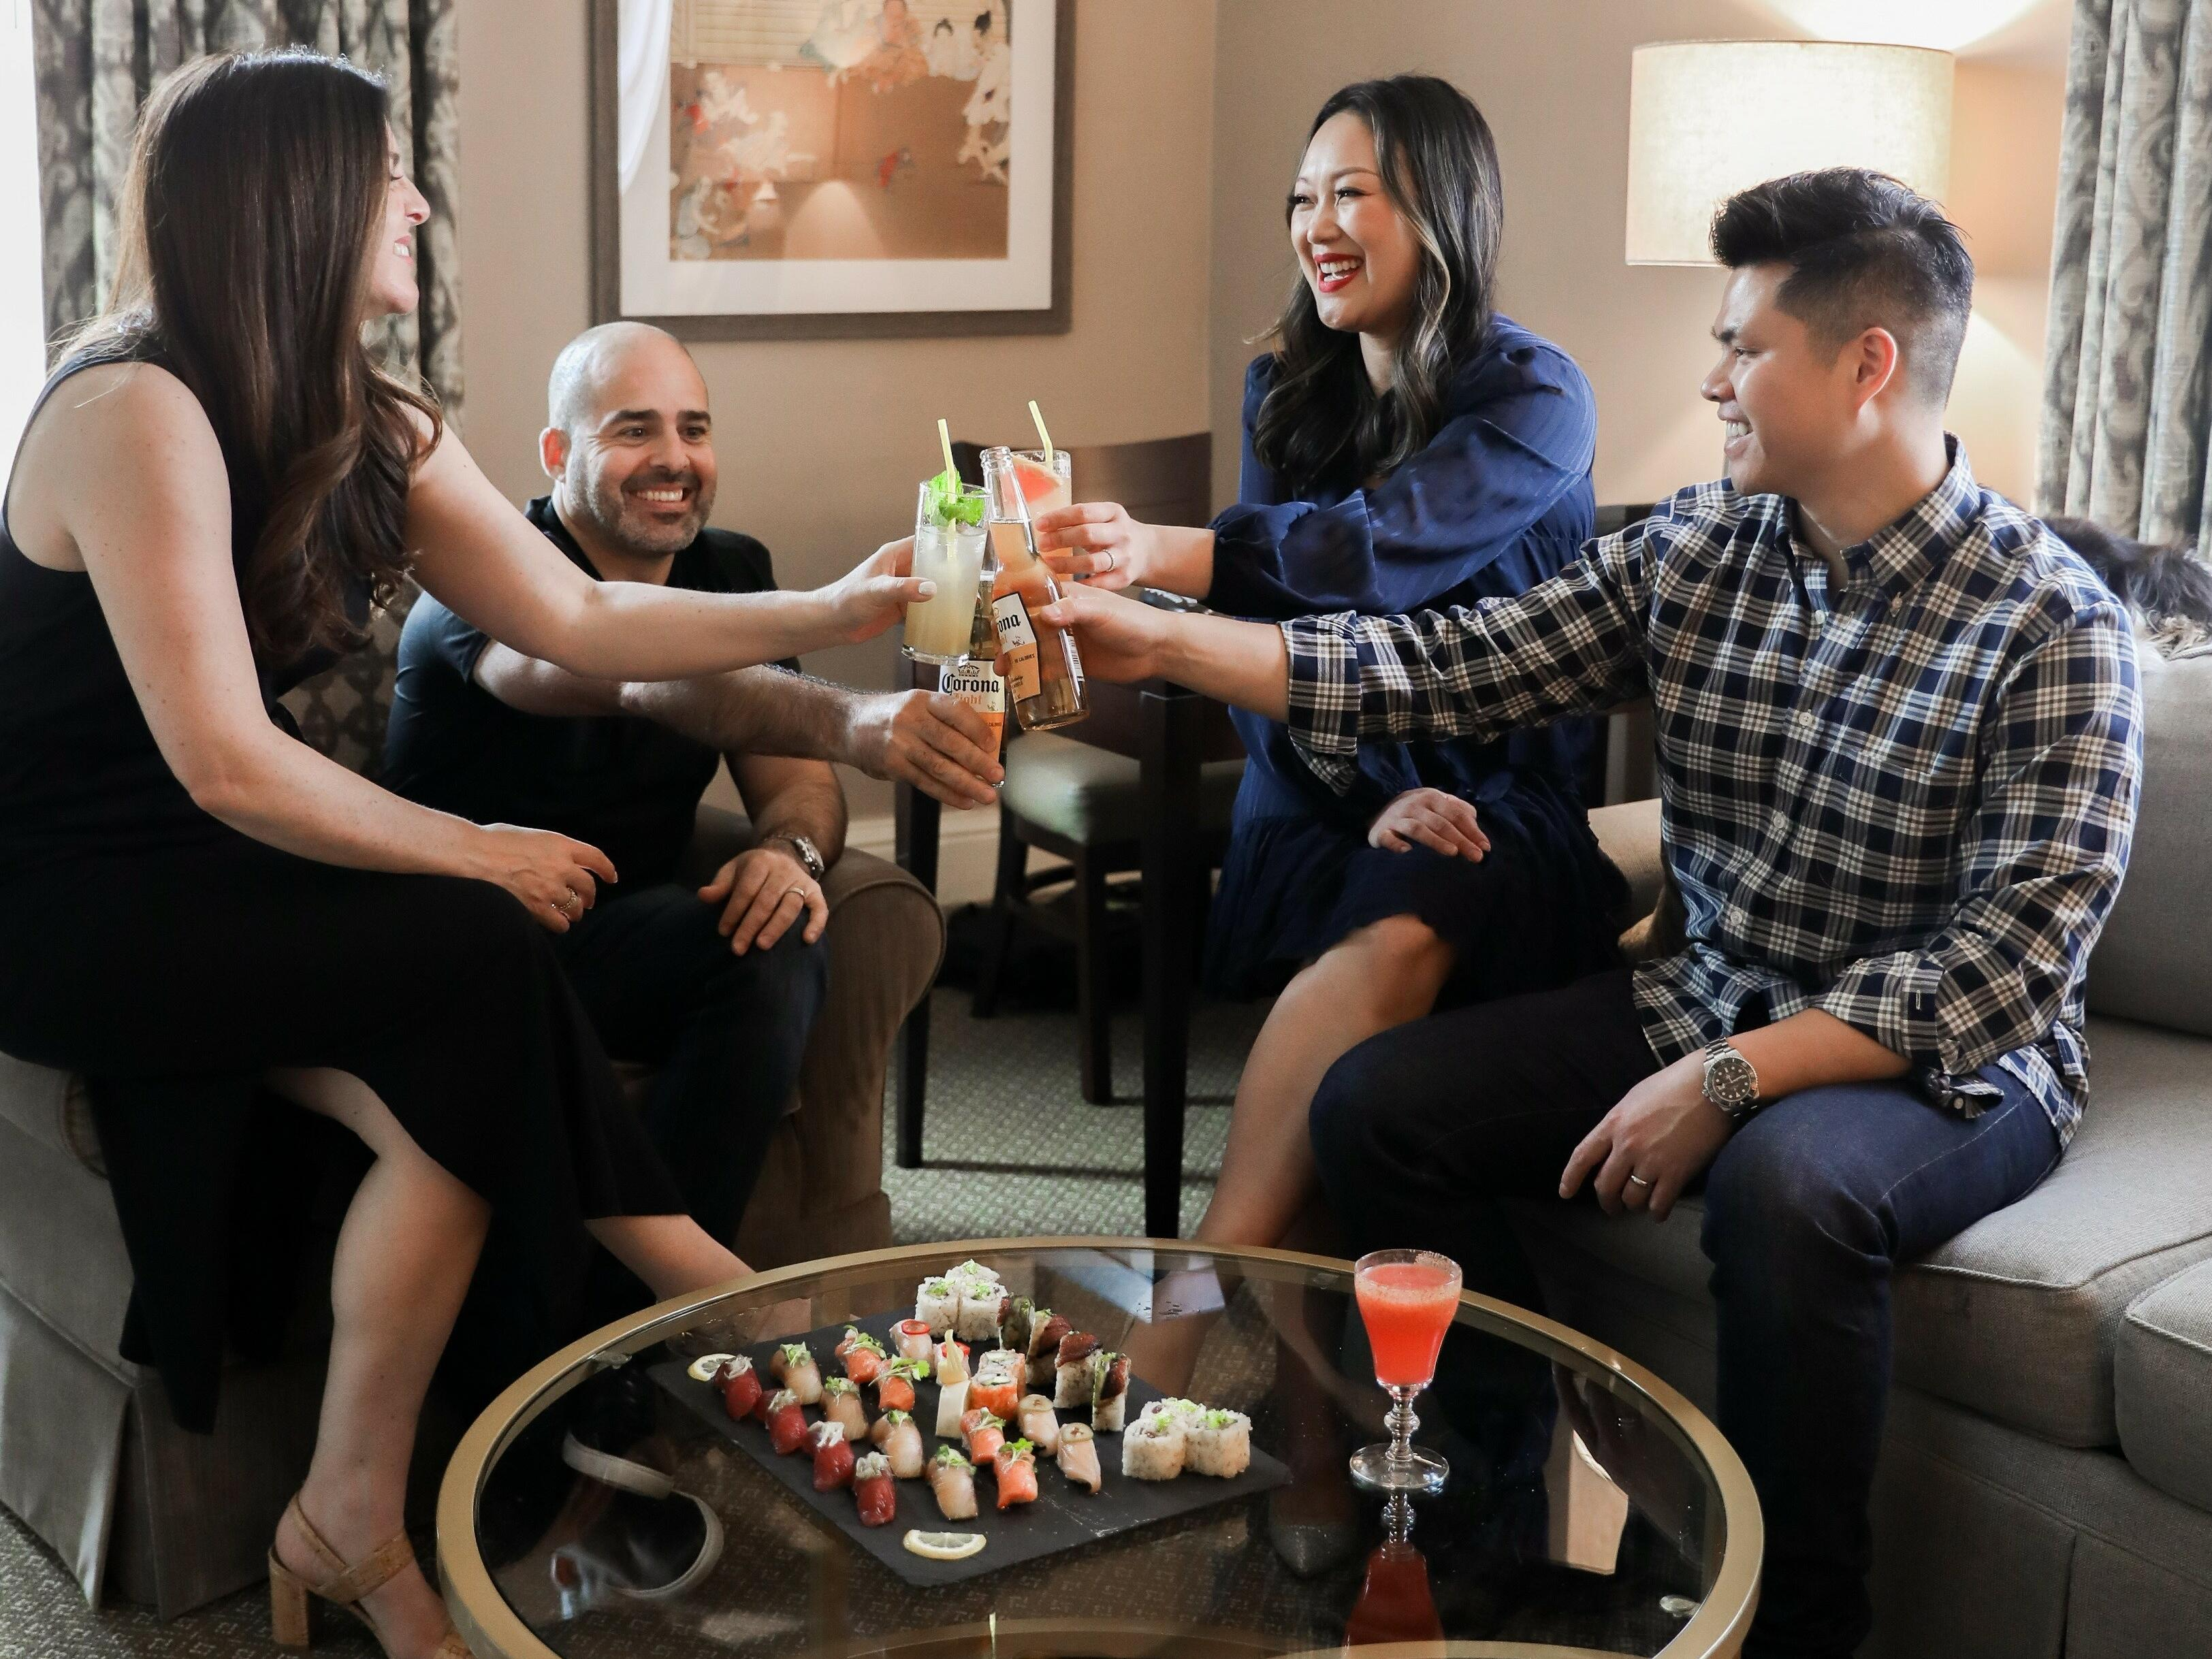 Four people in a living room with a sushi platter and cocktails.